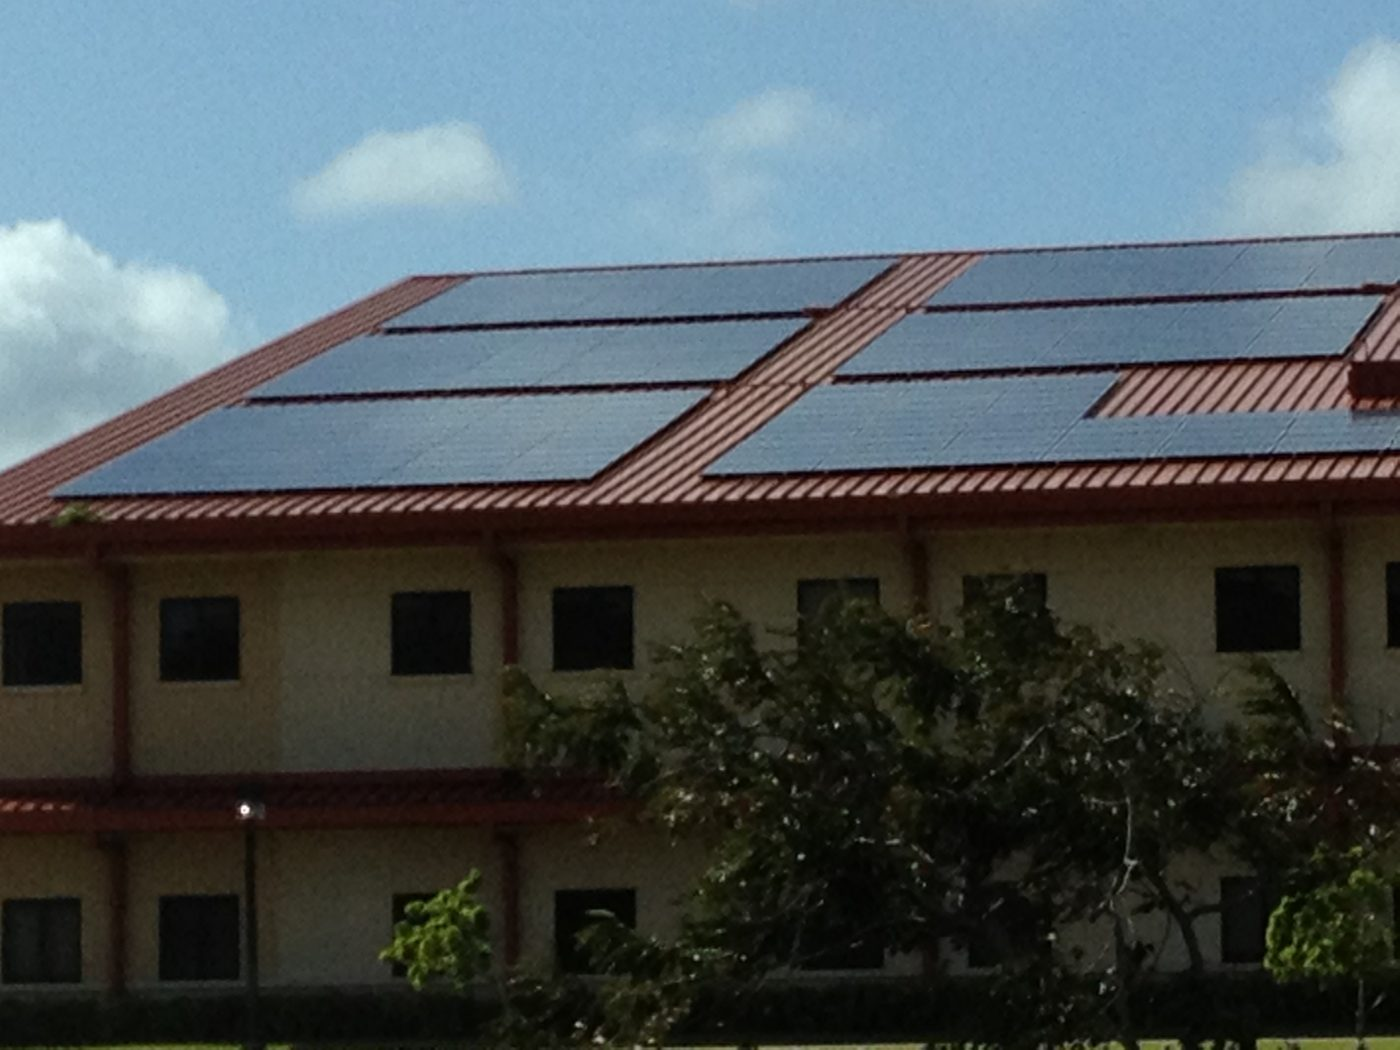 kauai-community-college-with-solar-panels-2012-close